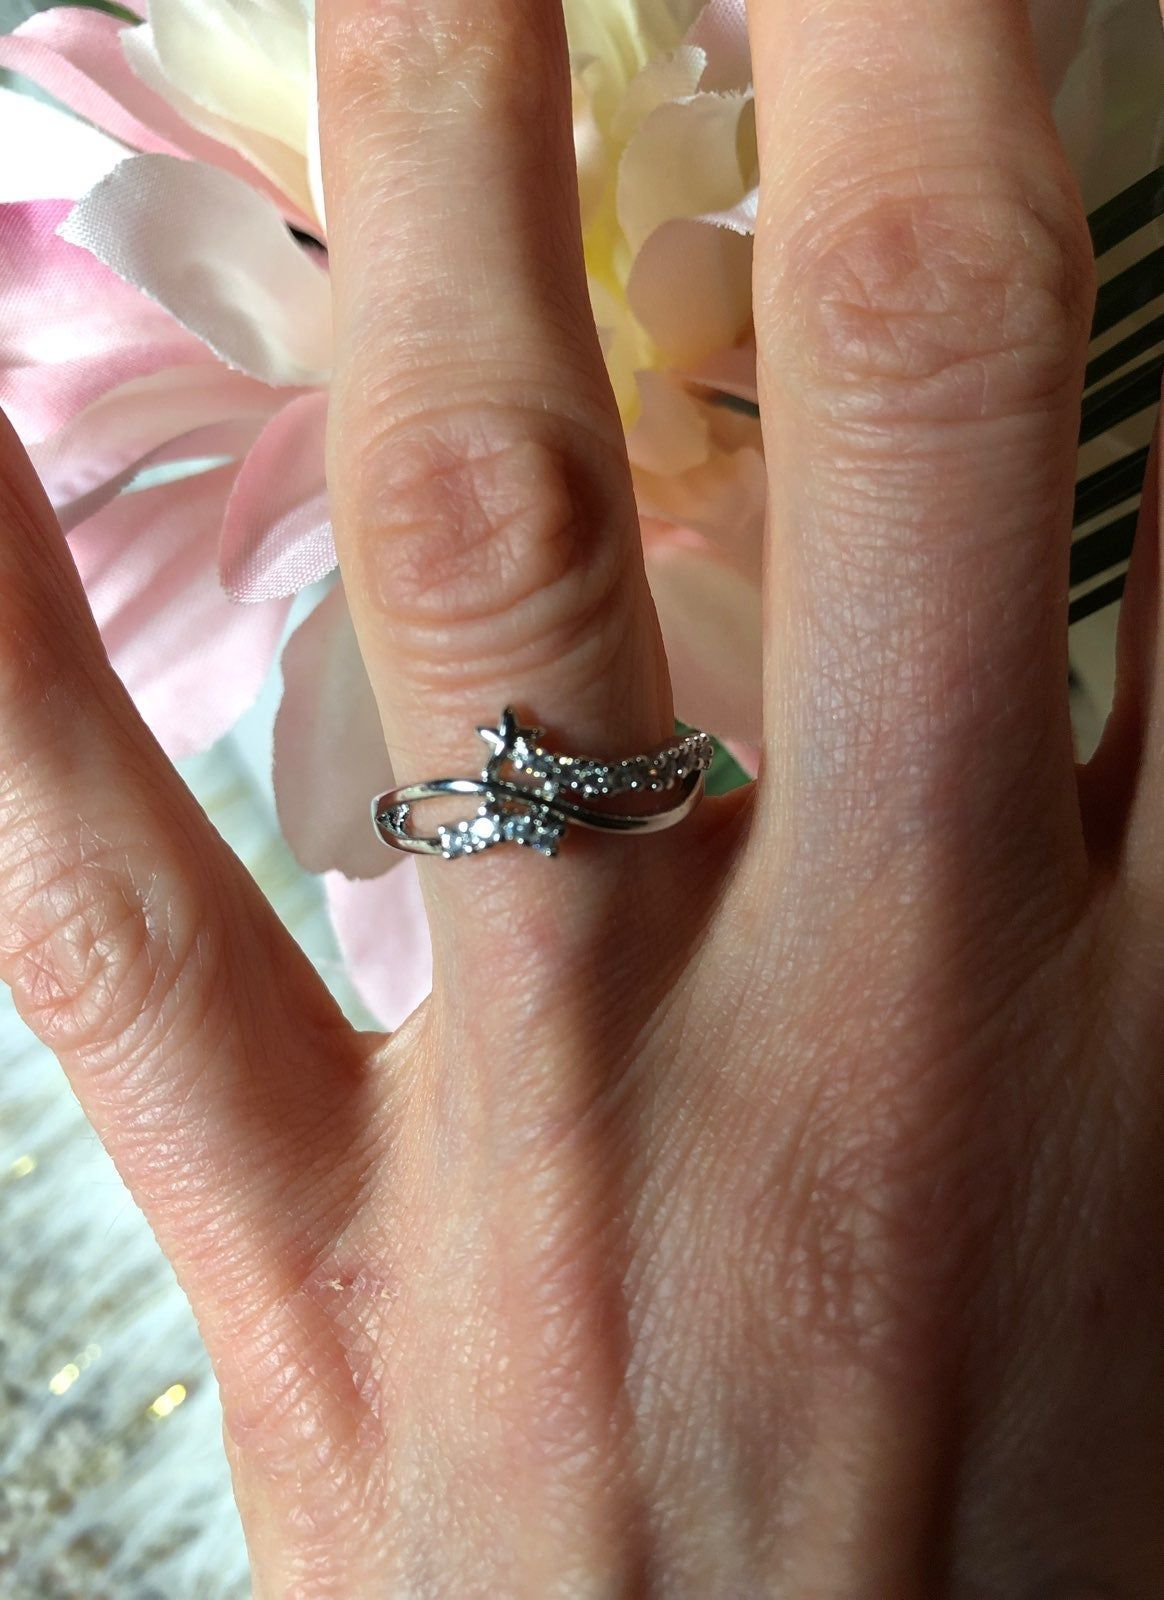 Adorable Little Shooting Star With A Trail Of Sparkly Crystals Stamped 925 Inside Ring Is A Size 6 5 Preowned Great No Flaws Condition Rings Ring Size 925 Ring